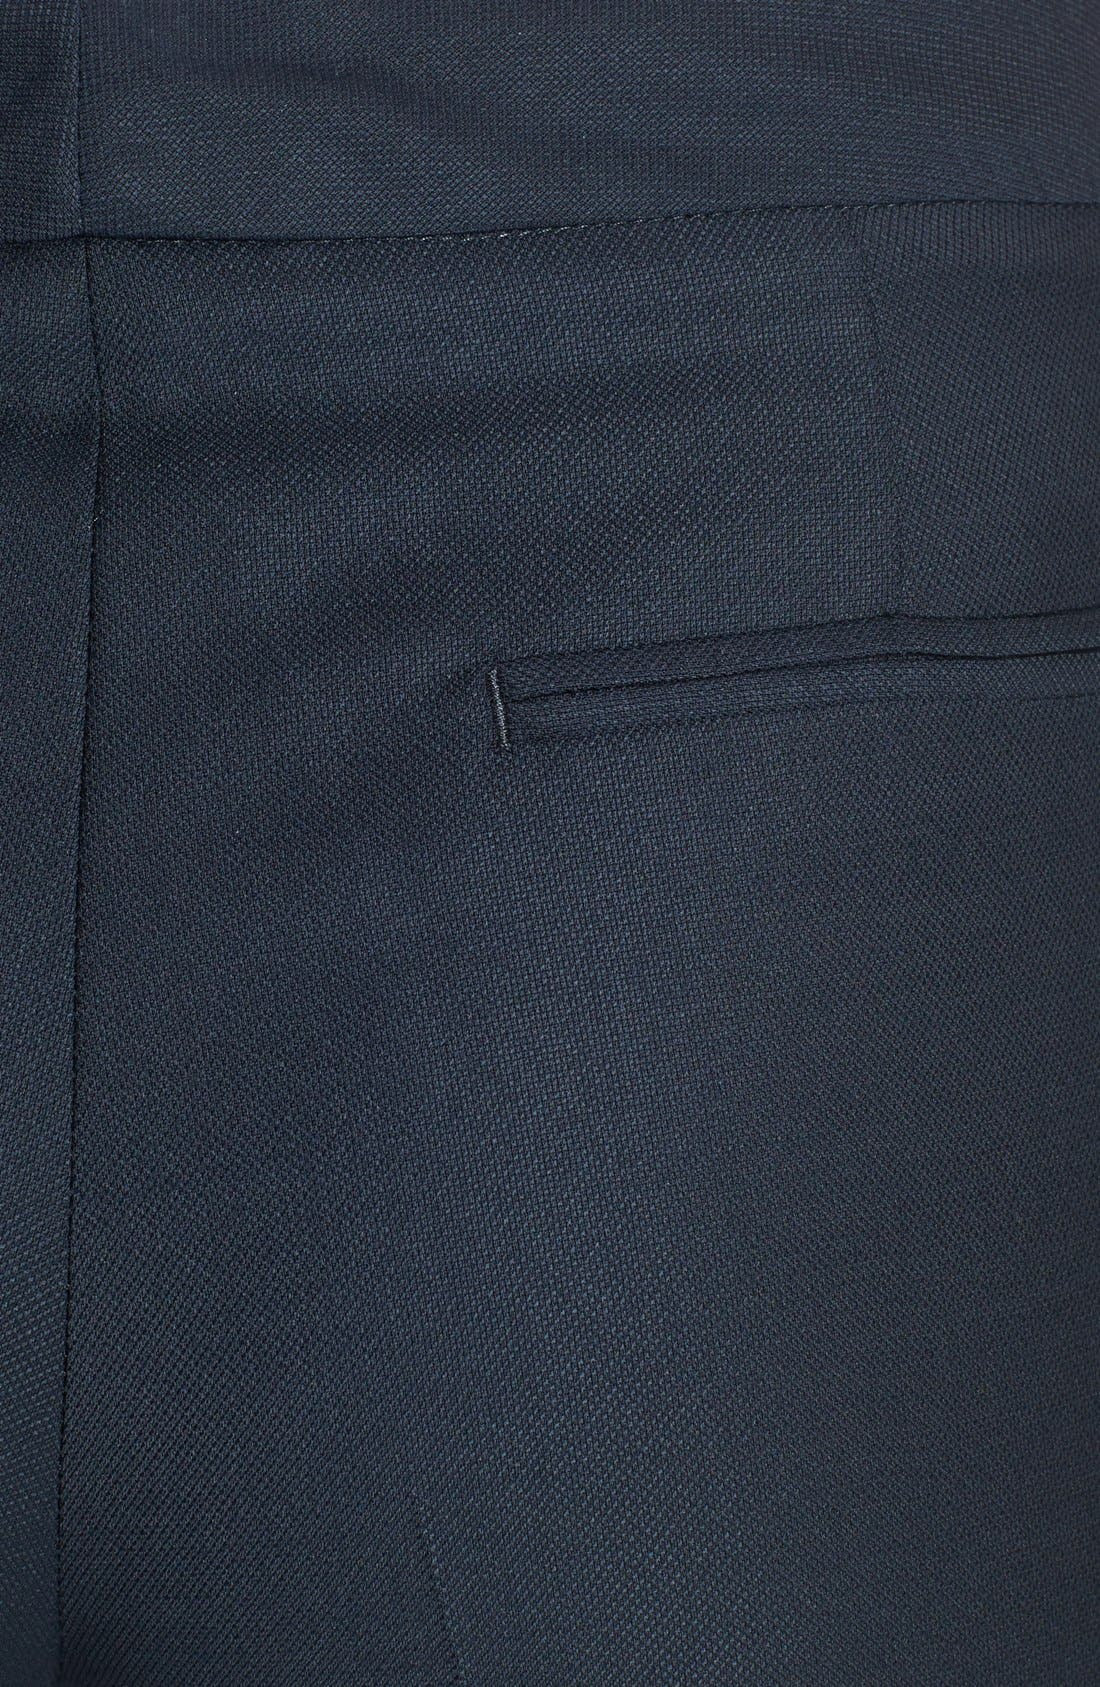 Alternate Image 3  - Santorelli Slim Leg Wool Pants